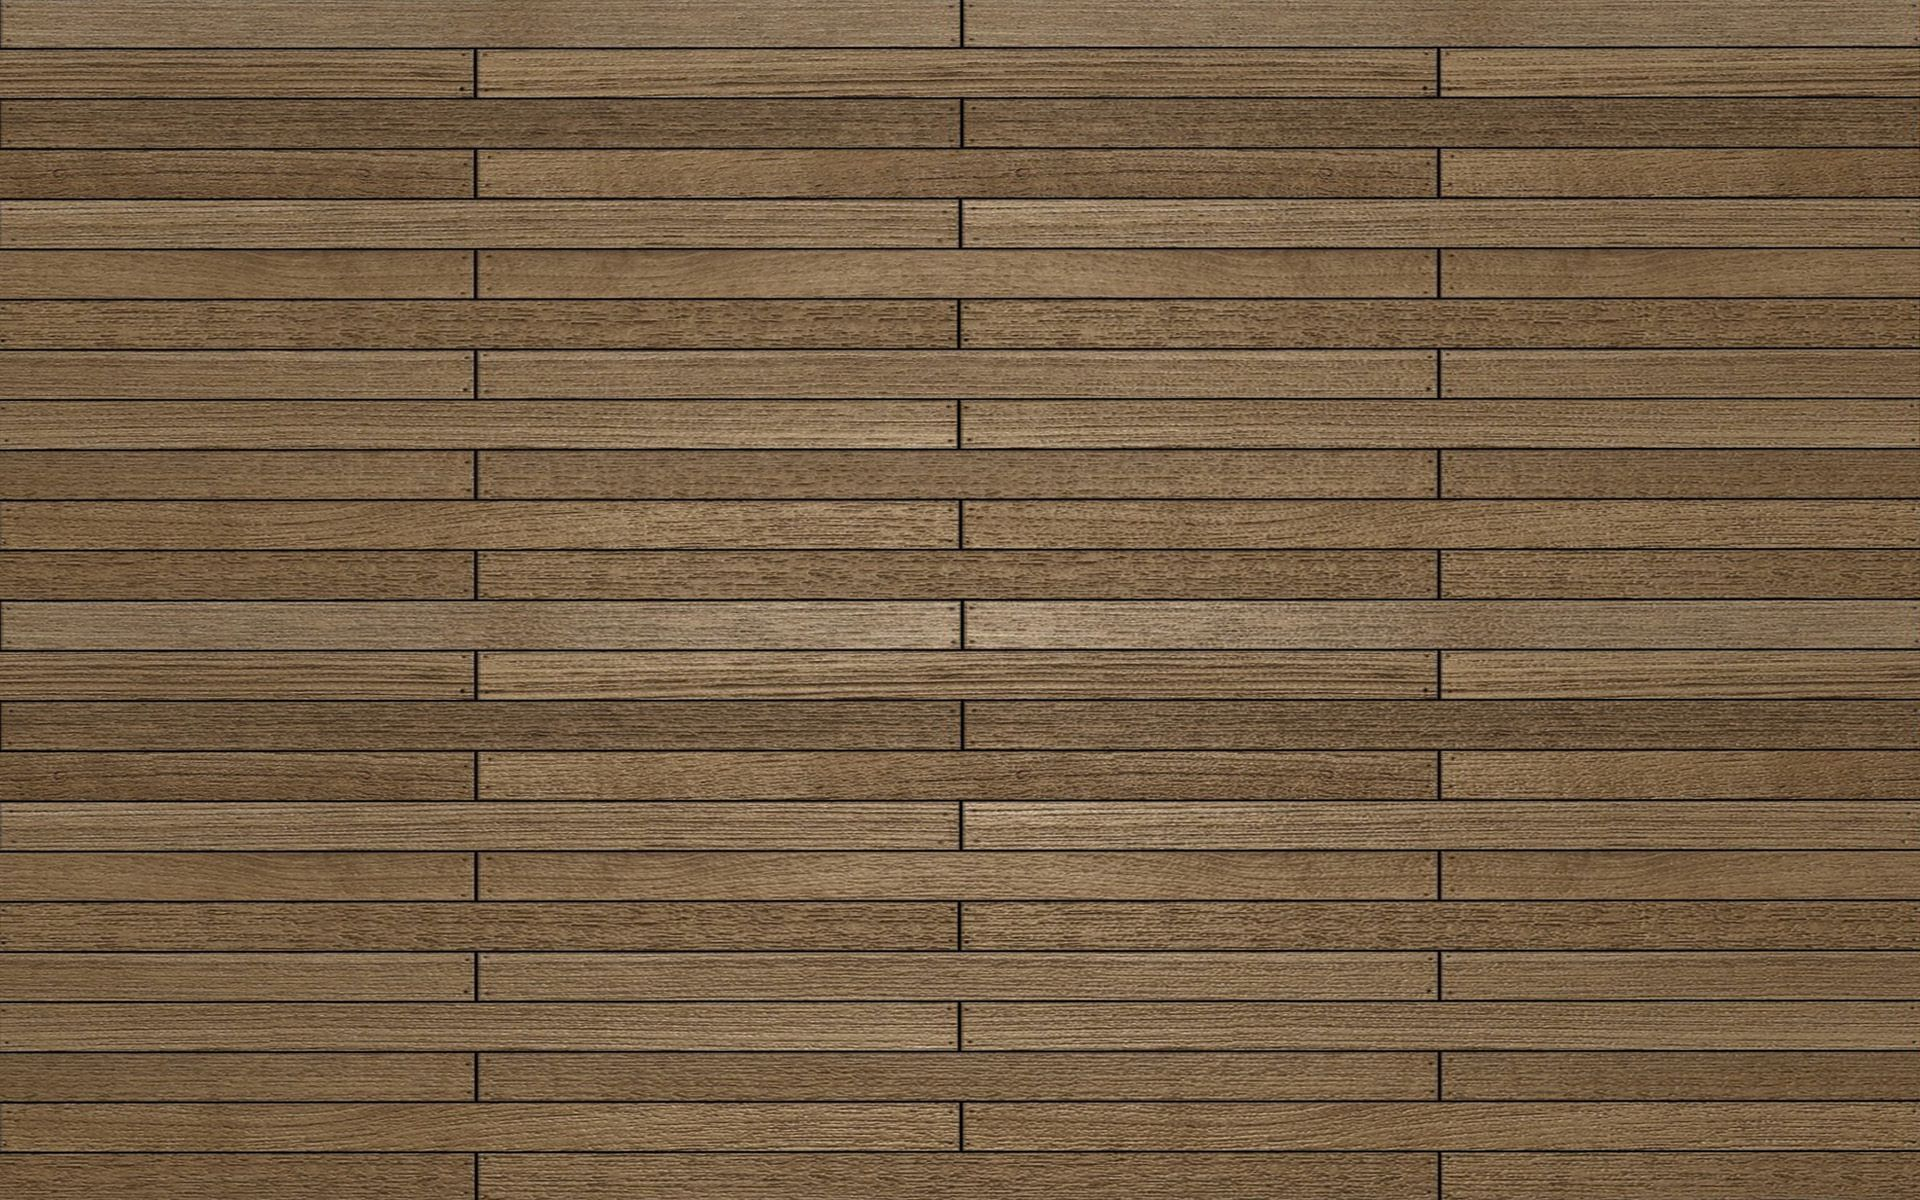 Wood flooring background awesome 31006 material texture for Timber decking materials